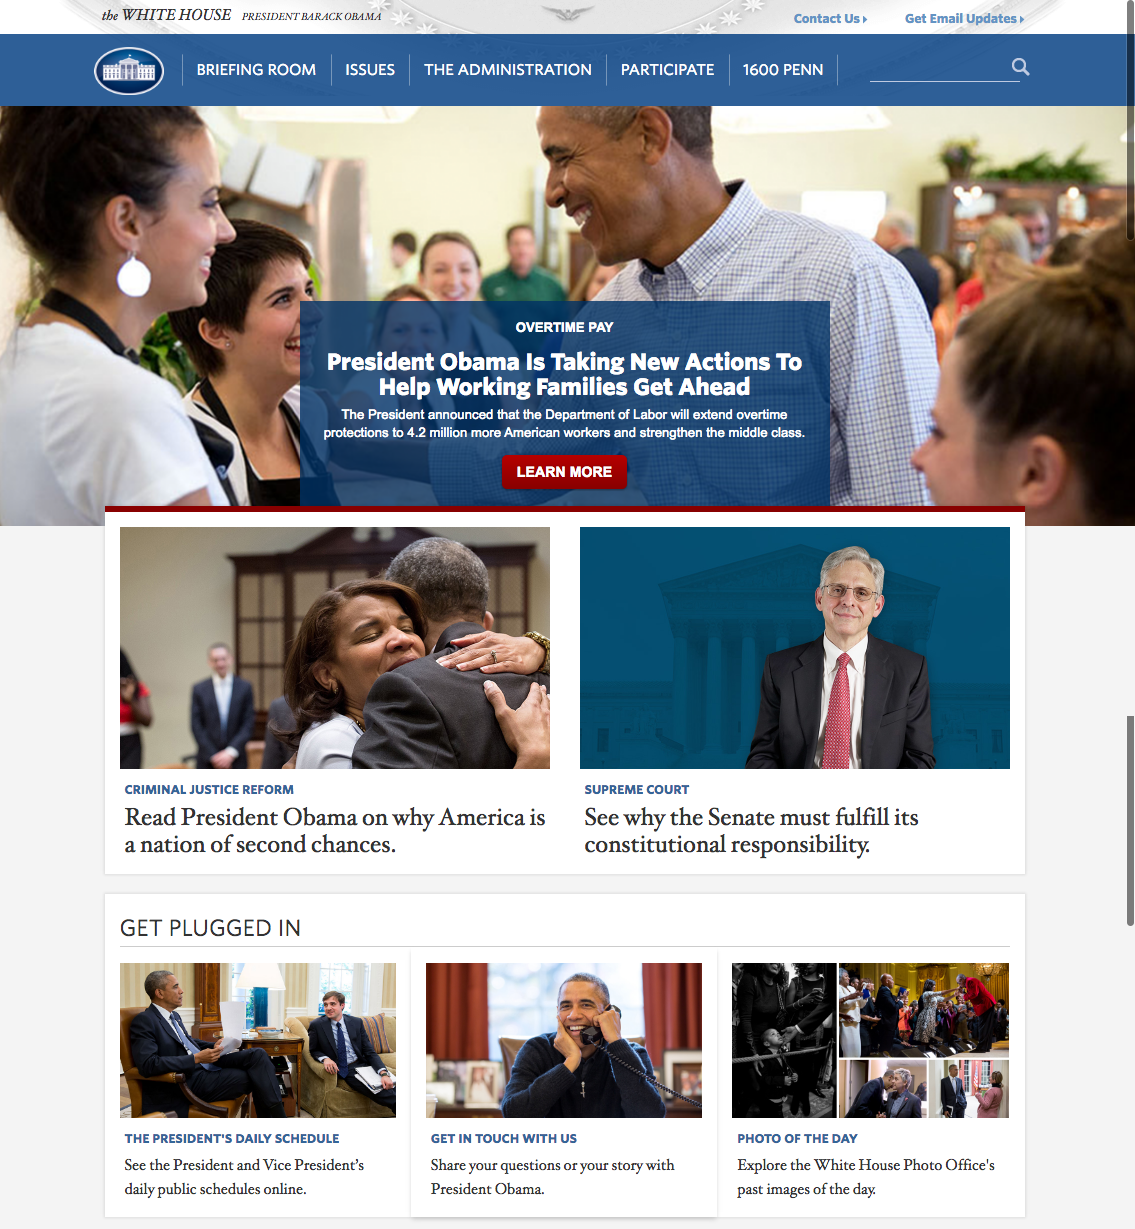 white-house-homepage-design.png